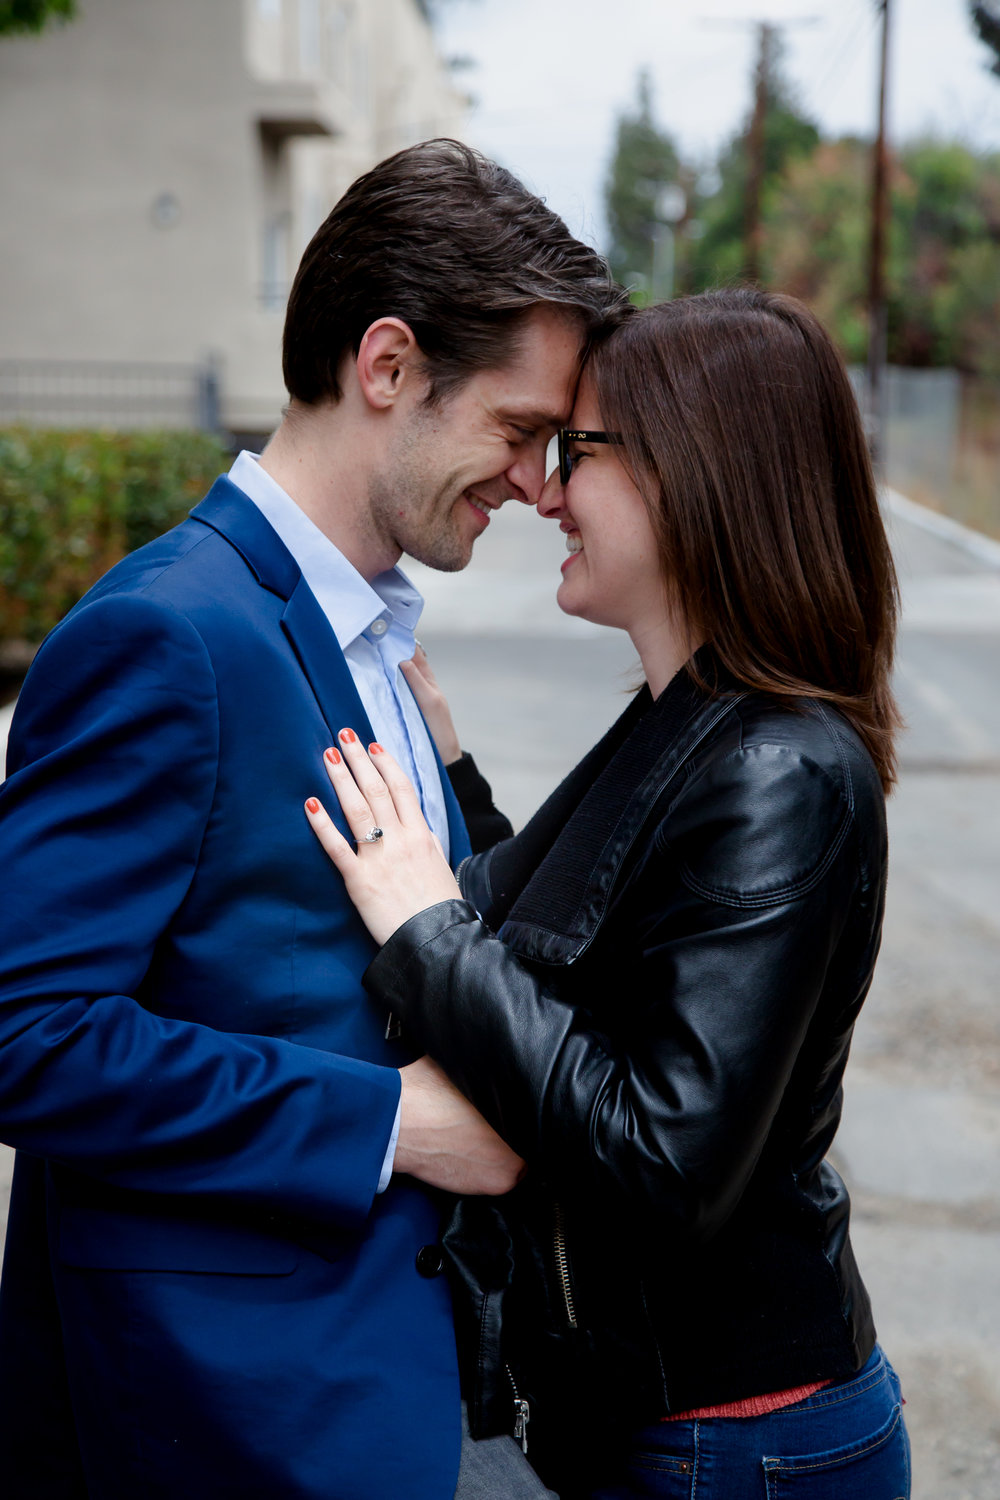 los_angeles_engagement_wedding_photographer_chicago_photographer-16.jpg